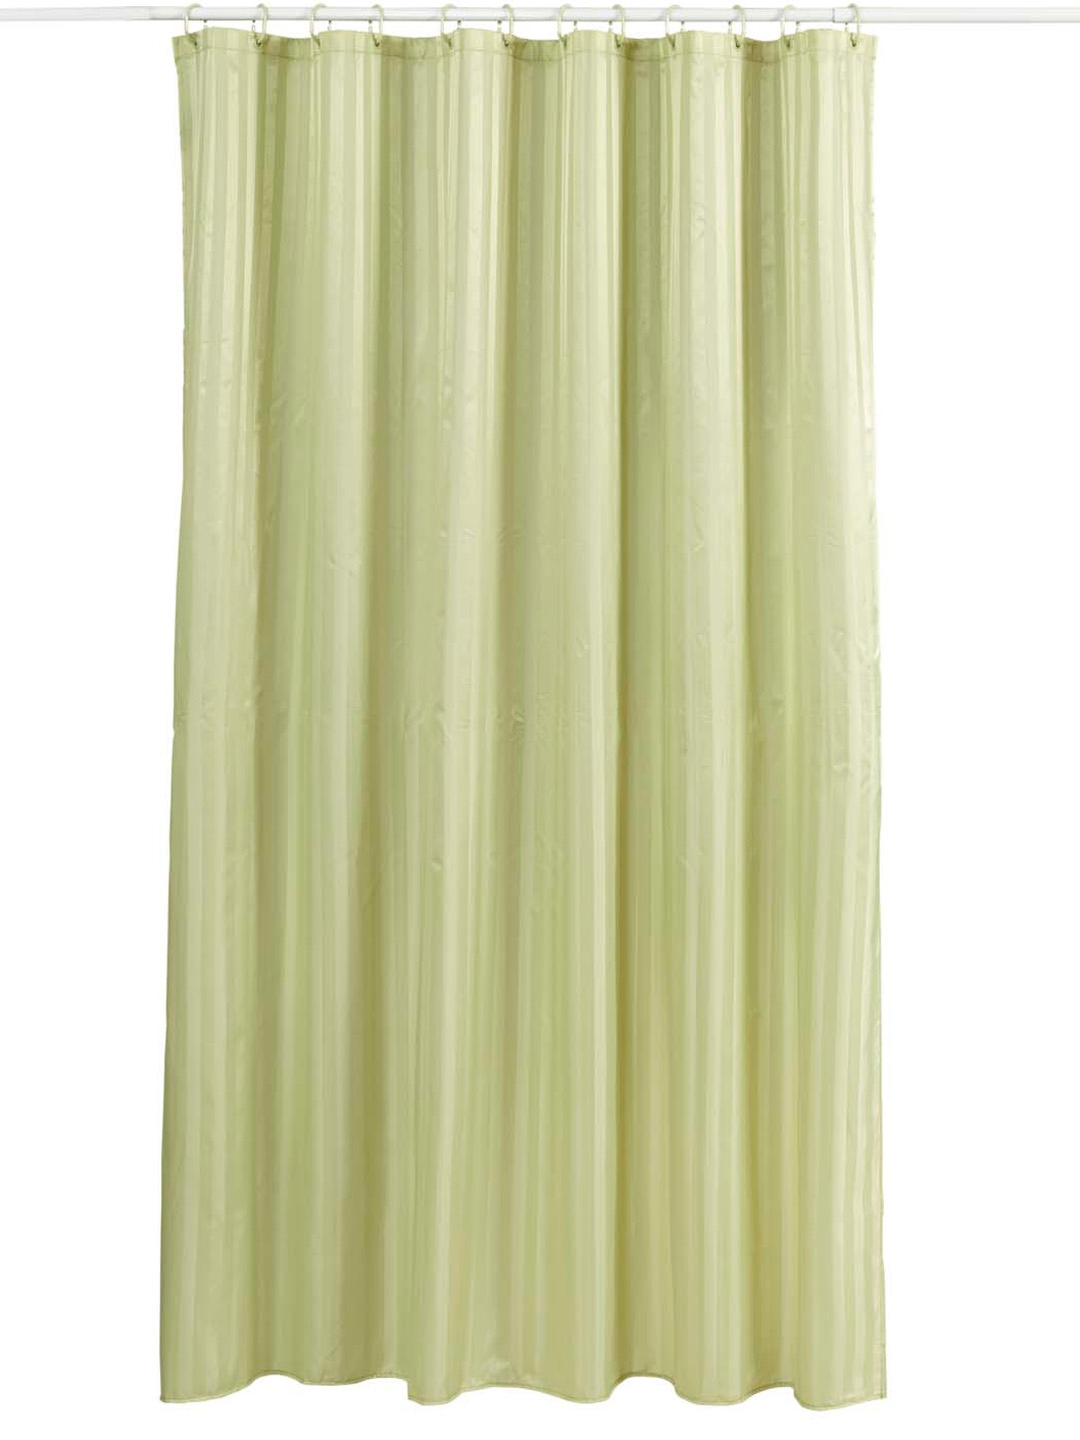 Buy OBSESSIONS Green Self Striped Single Shower Curtain